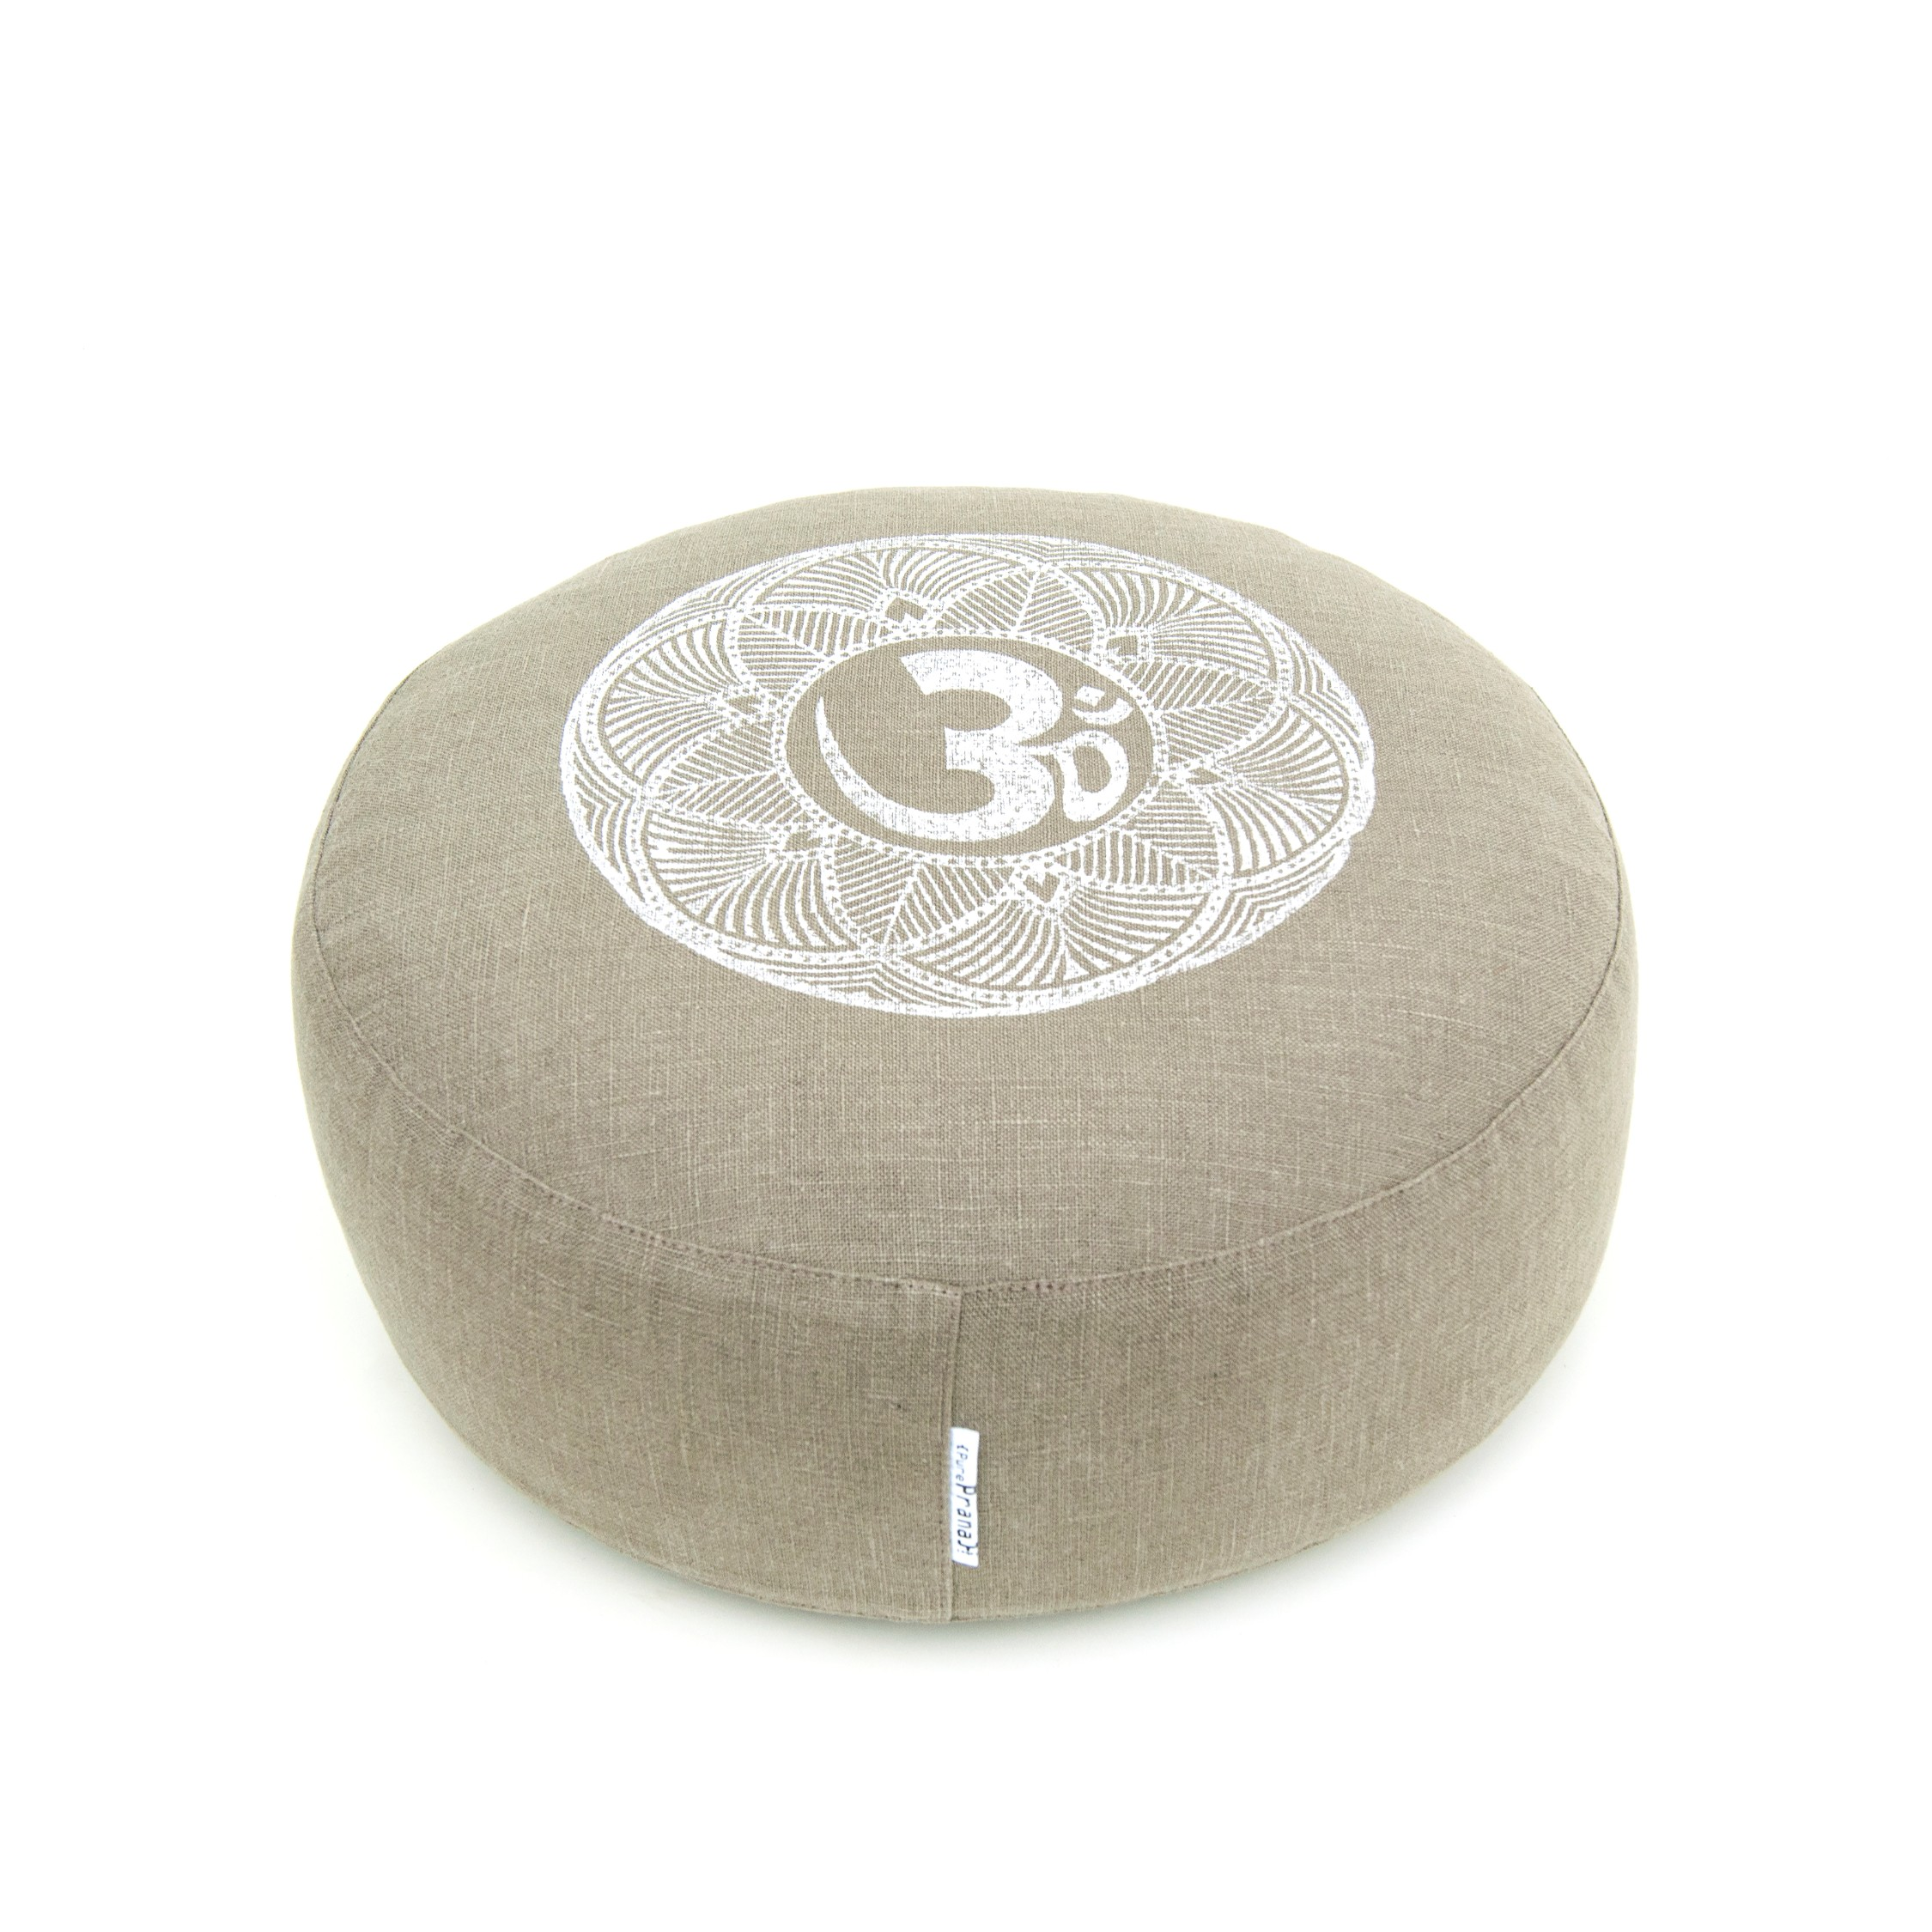 Organic meditation cushion OHM olive green/grey by Pure Prana Label